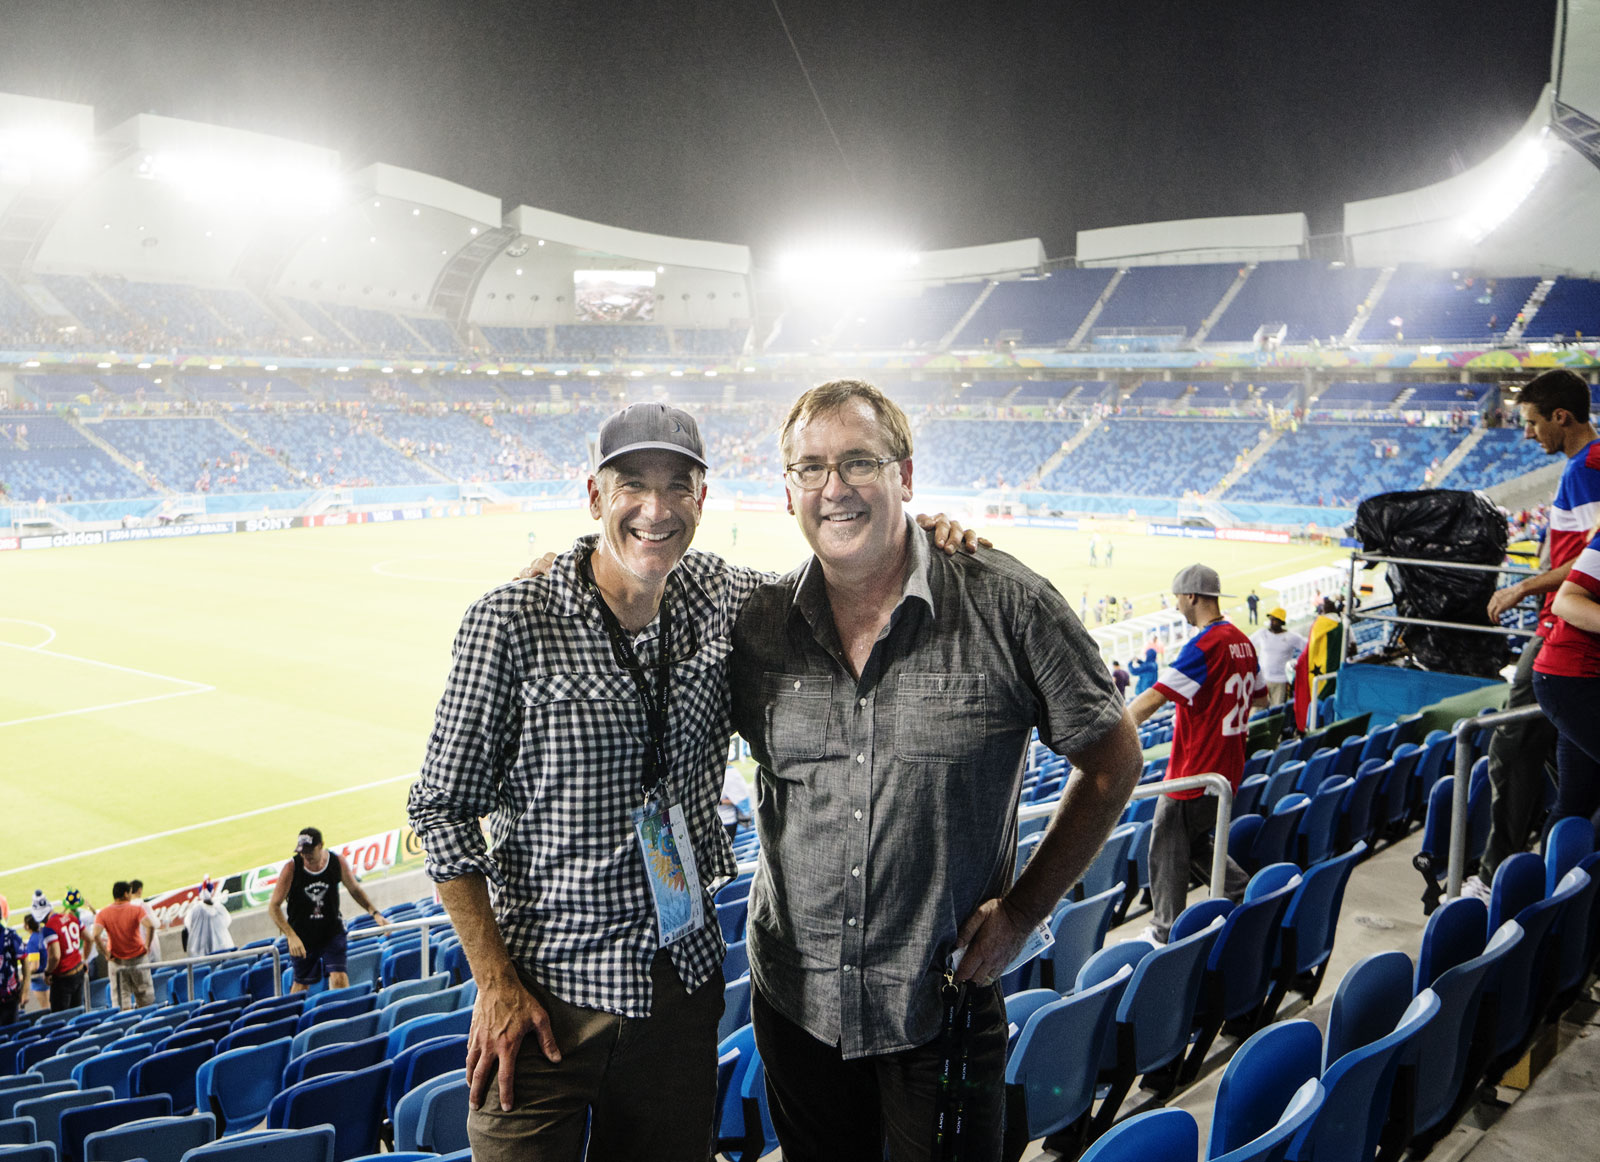 Sony Artisans David McLain and Brian Smith at FIFA World Cup in Natal, Brazil